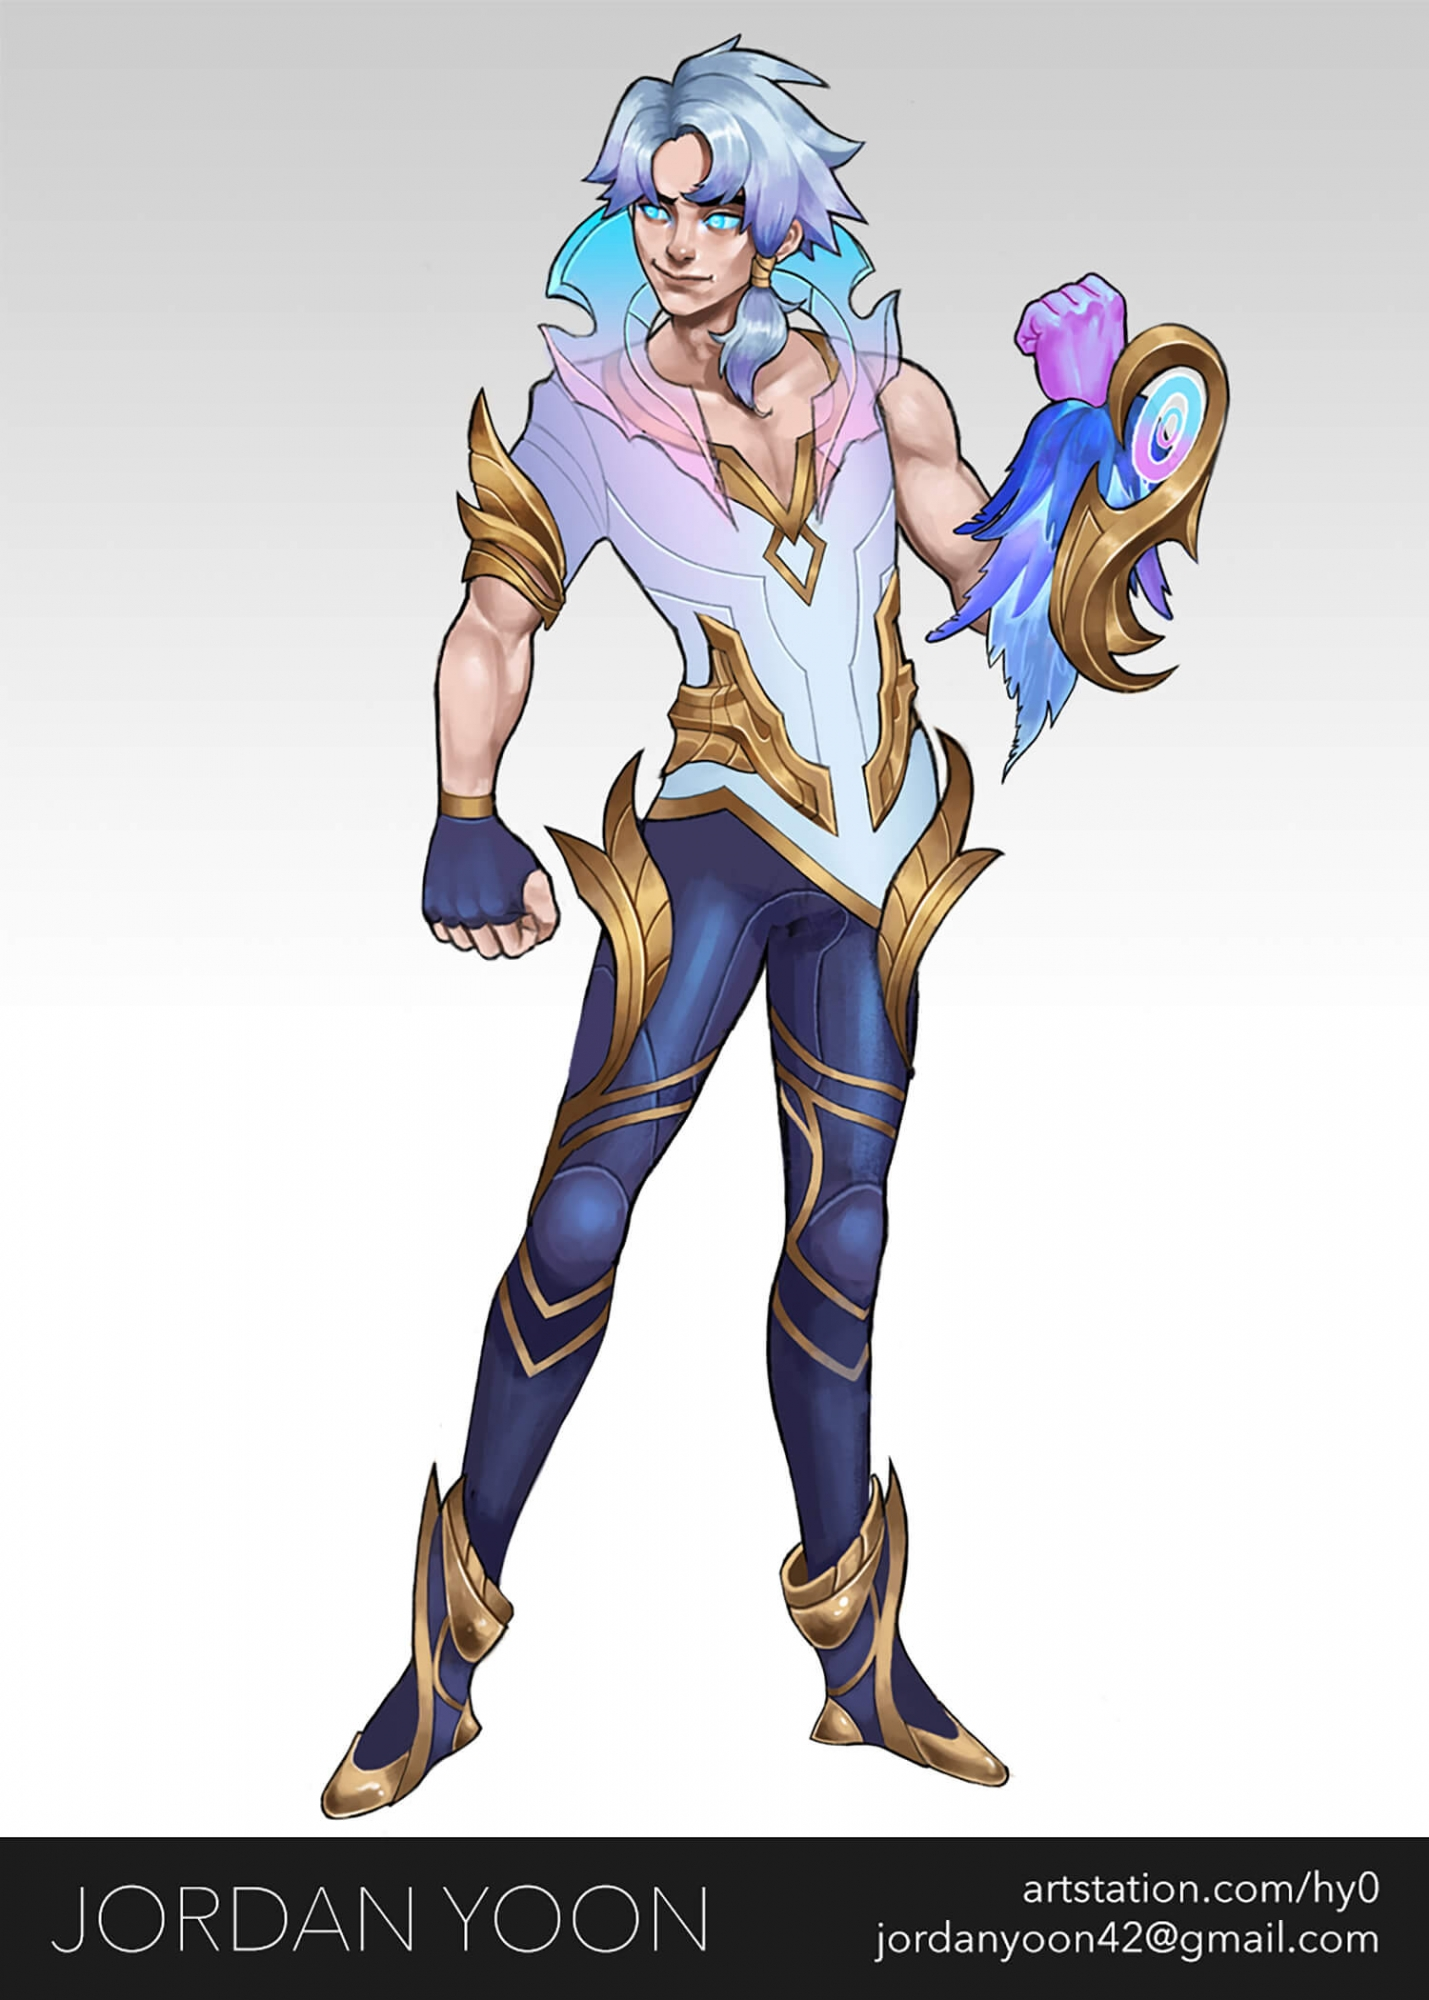 Fan-made skin design for existing League of Legends character.